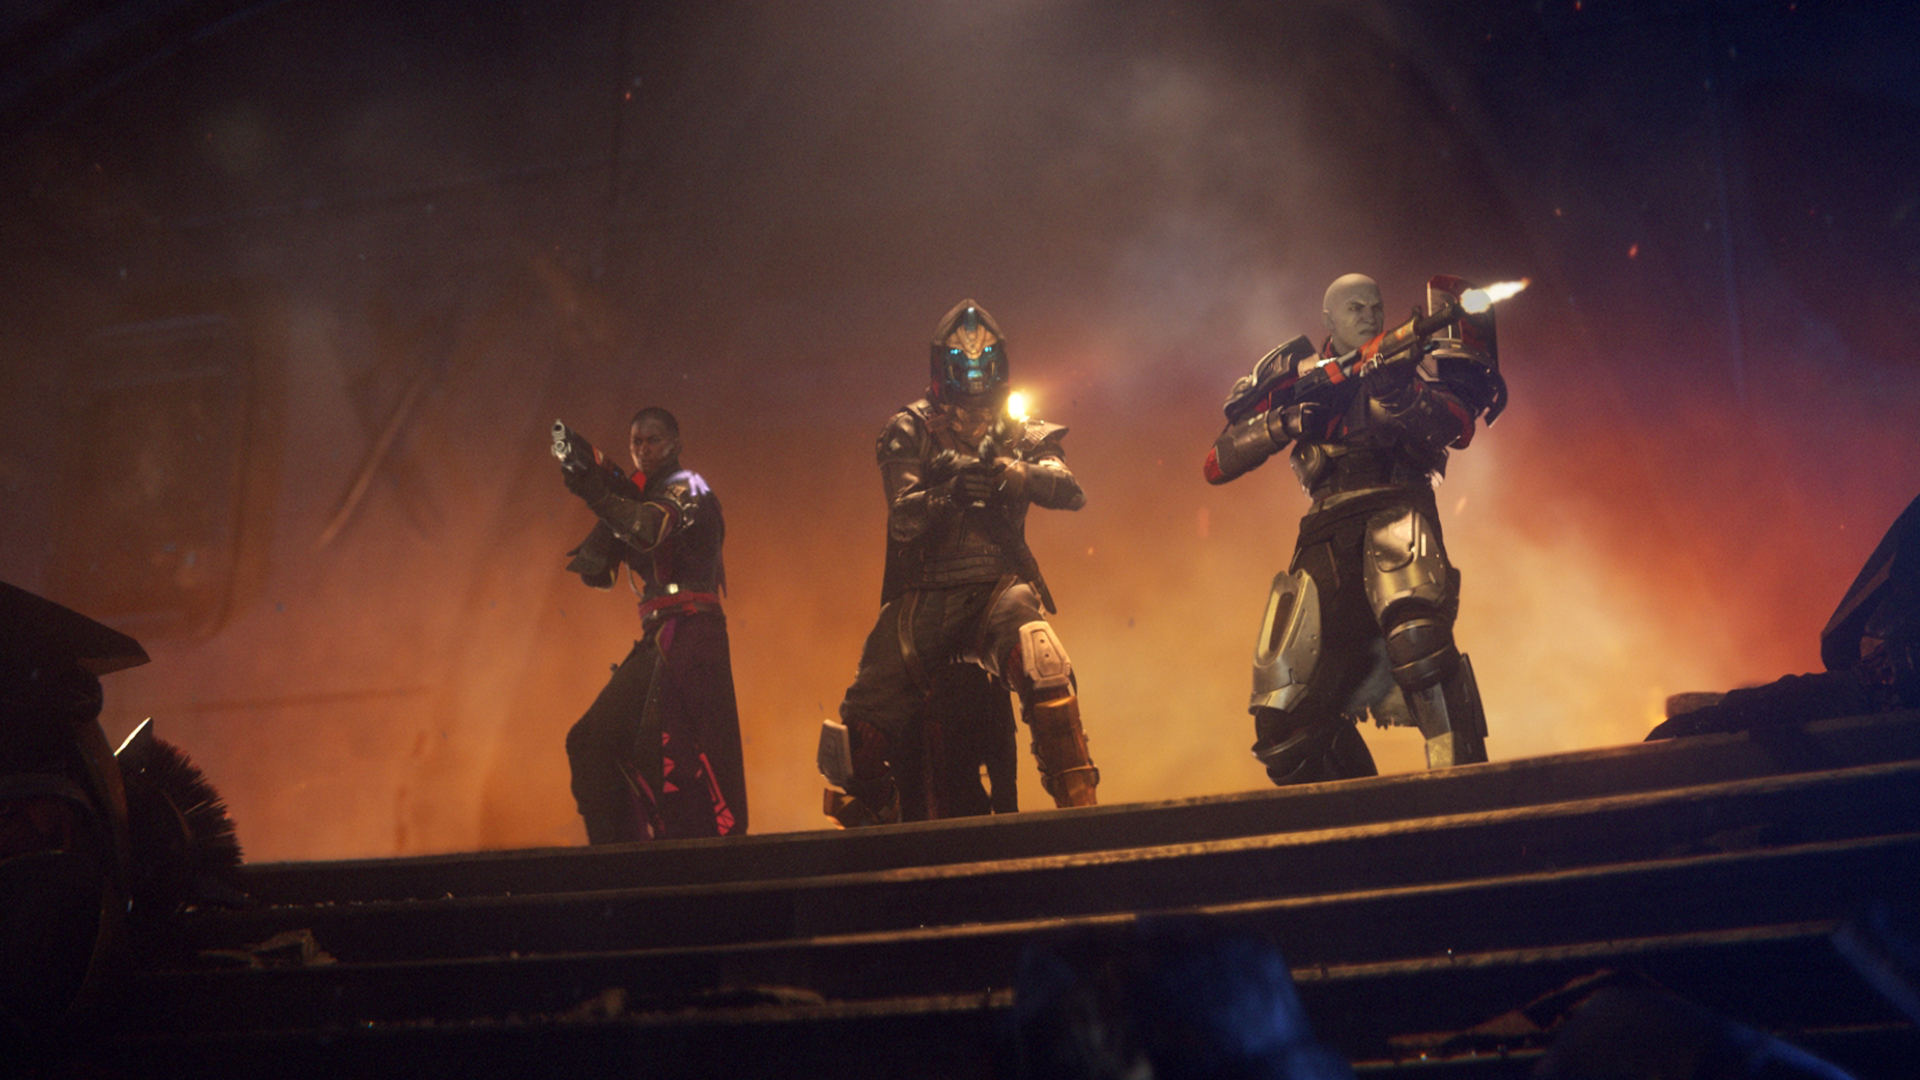 The Destiny 2 open beta has just launched!